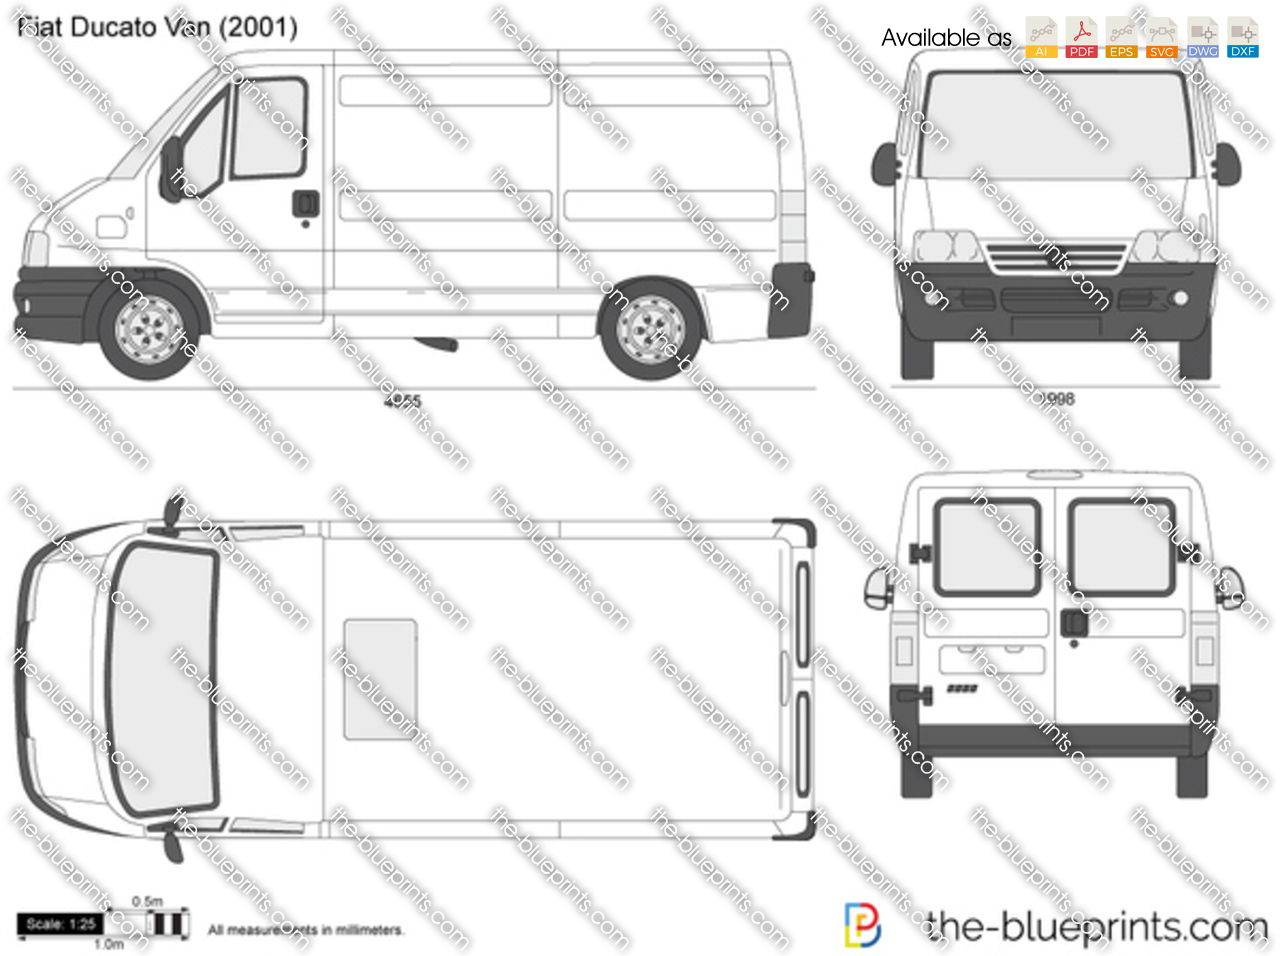 fiat ducato van vector drawing. Black Bedroom Furniture Sets. Home Design Ideas